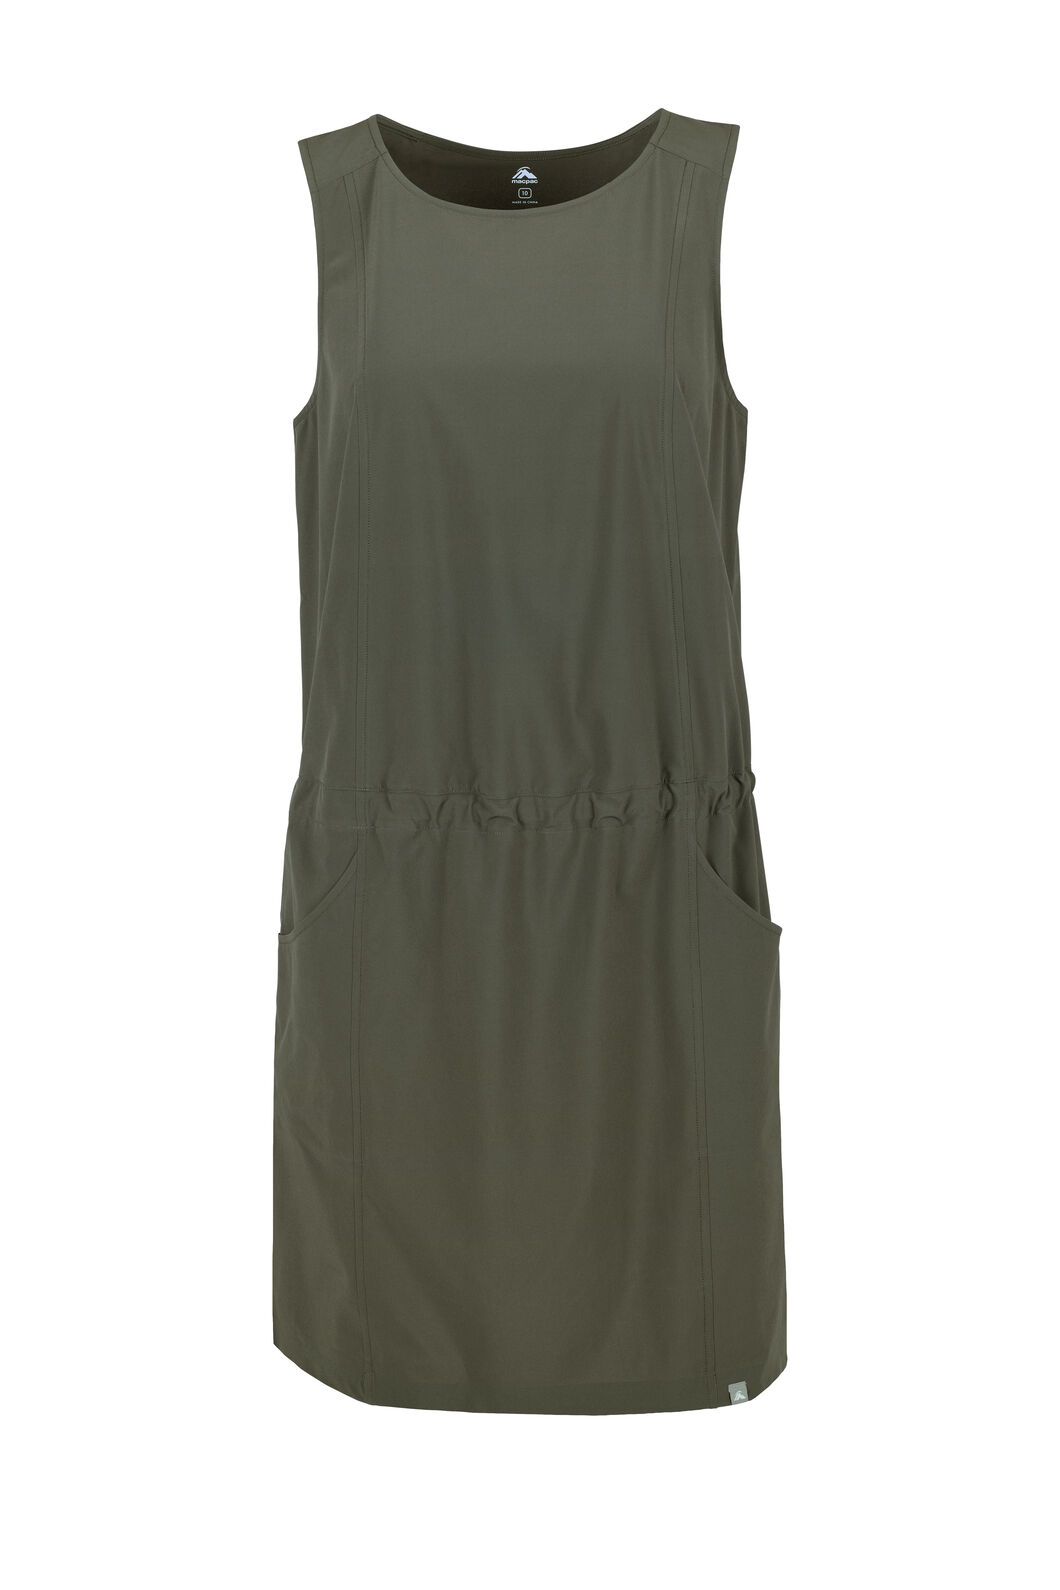 Macpac Mica Dress — Women's, Deep Olive, hi-res